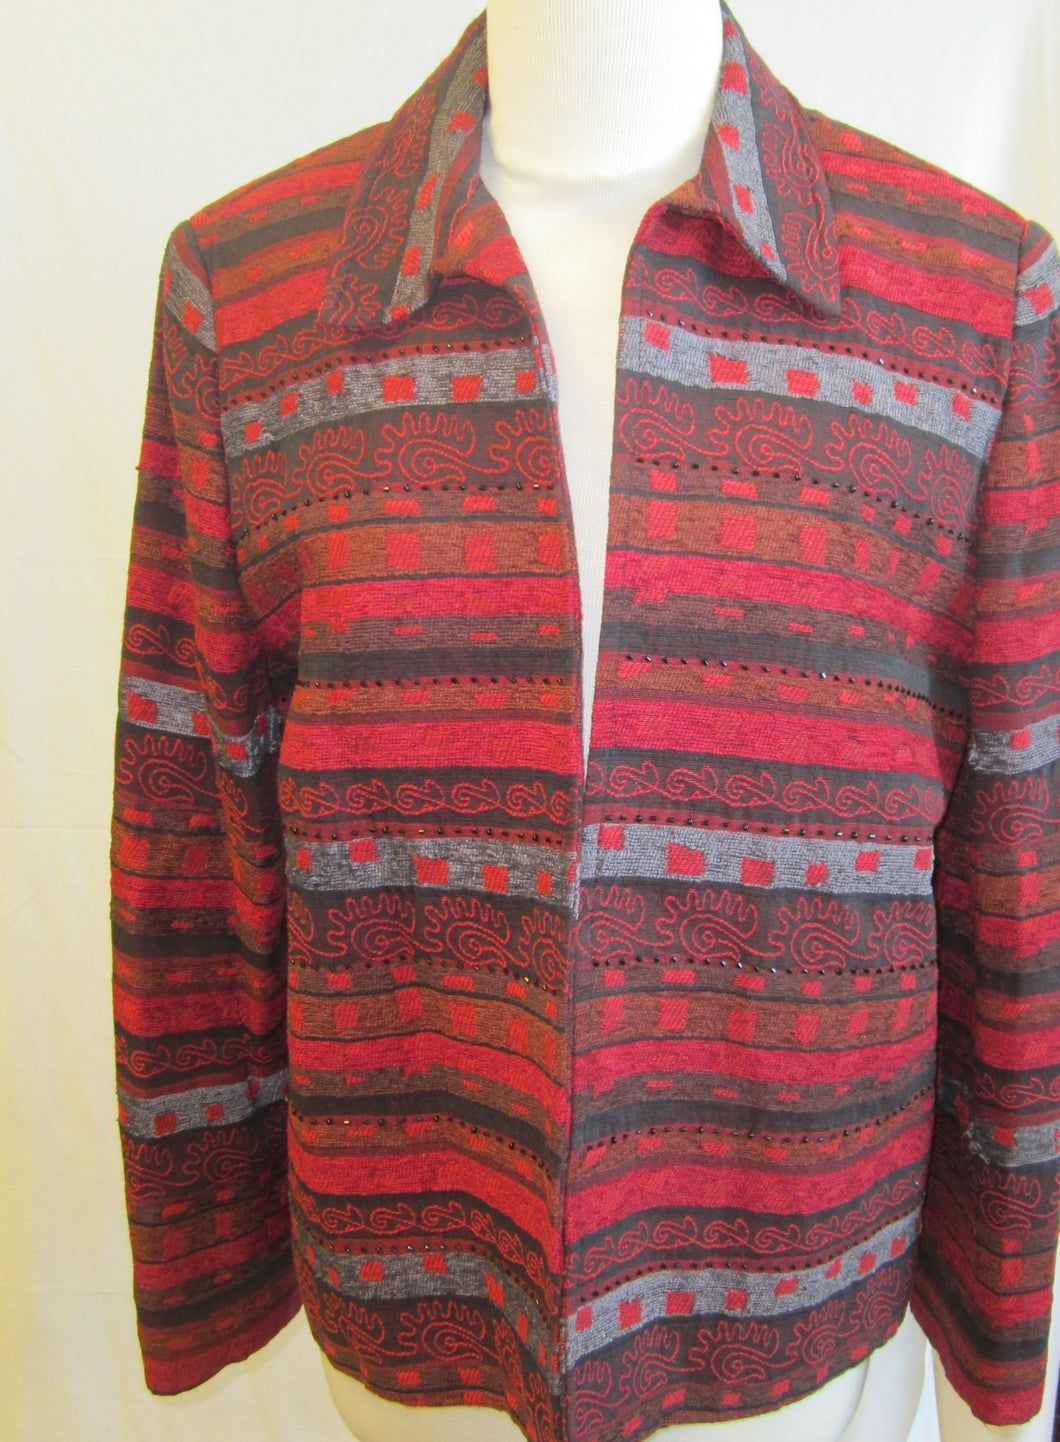 Women's Patterned Jacket                     12(P)                                               1/27A